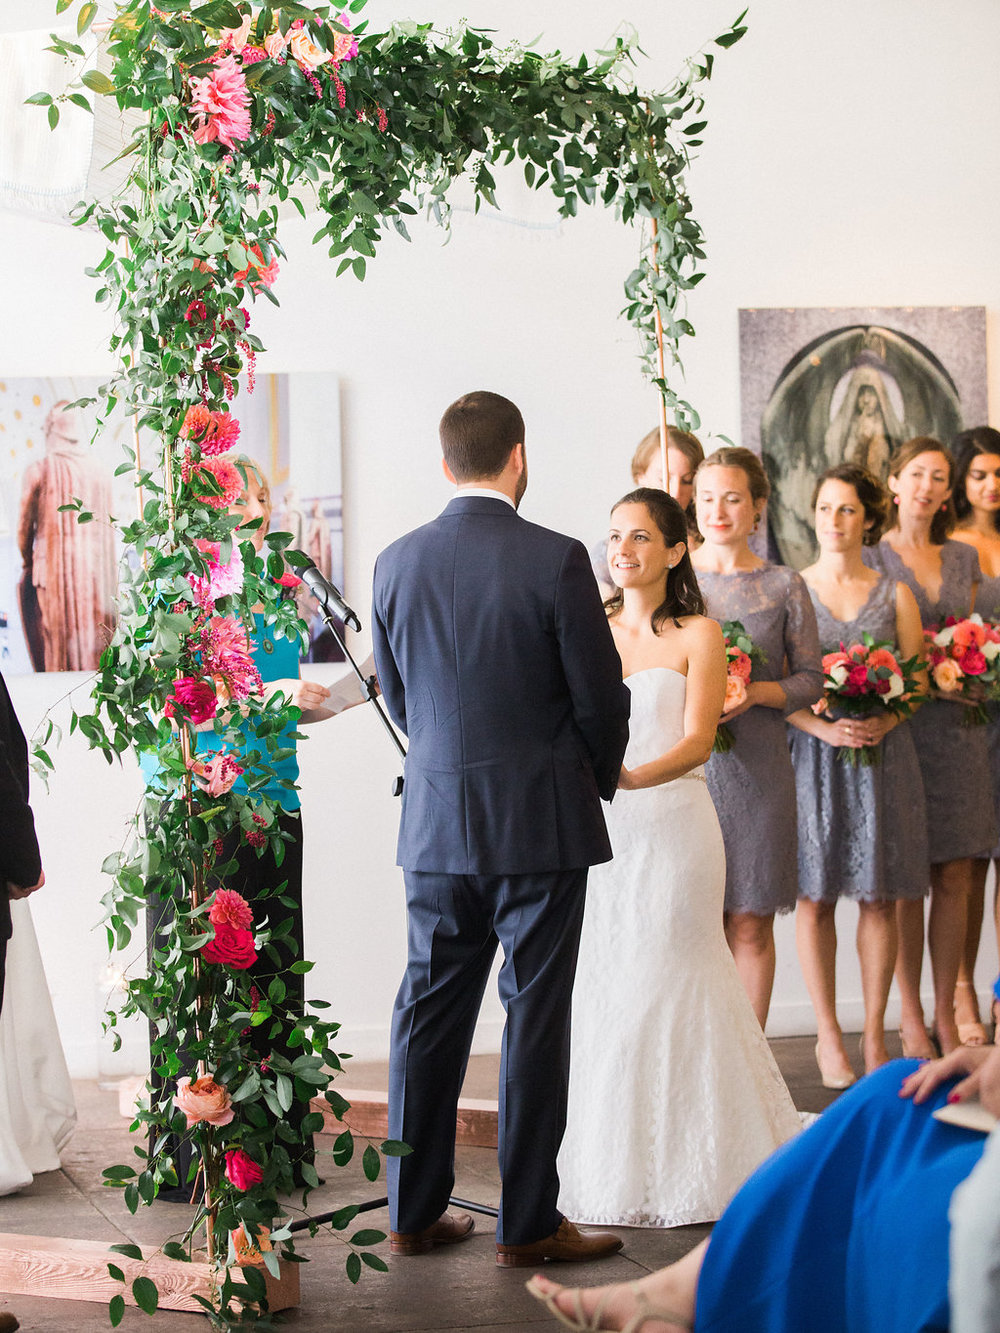 Longview Gallery Wedding Washington DC Lissa Ryan Photography Sincerely Pete Events Couple in Ceremony